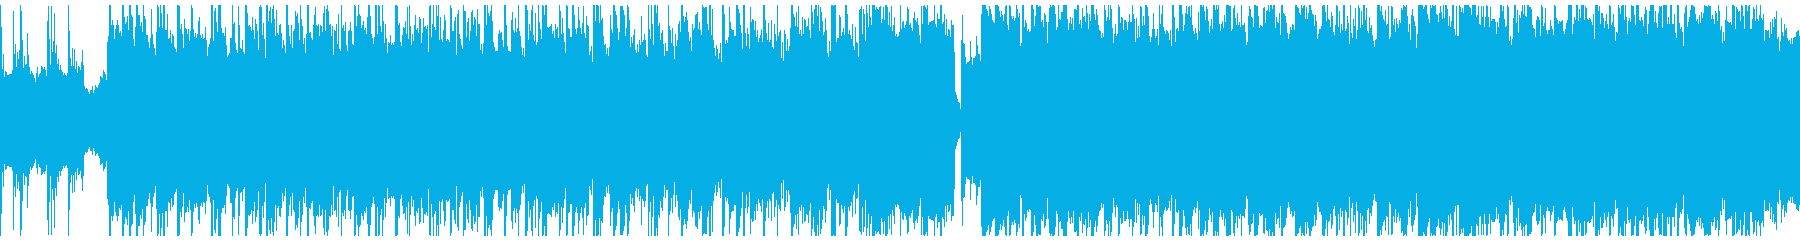 Fight To Live Loop's reproduced waveform